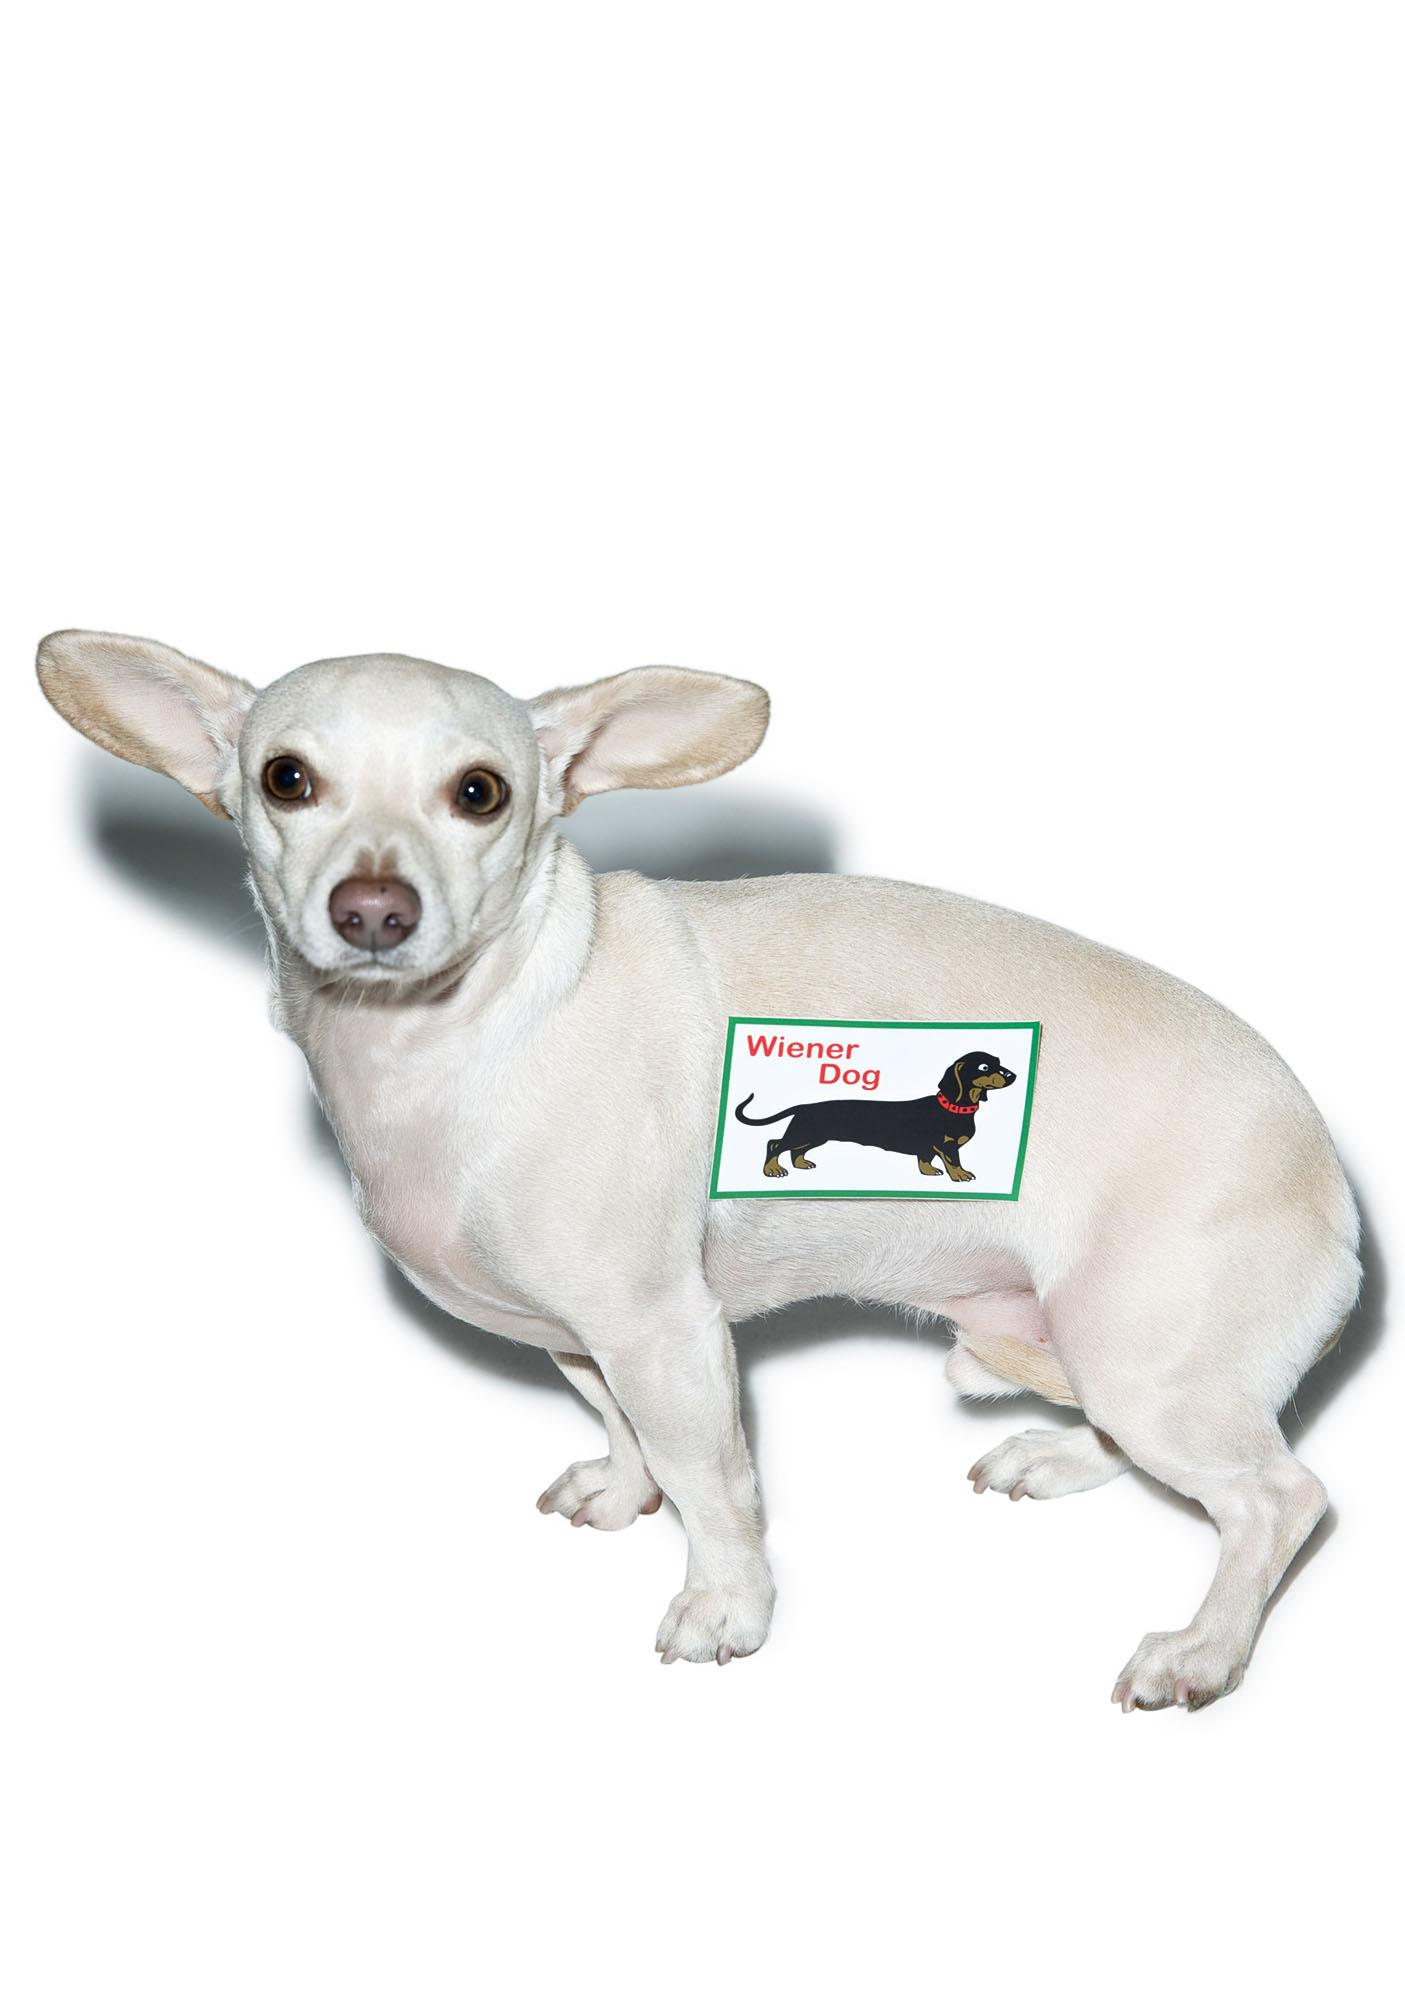 Weiner Dog Sticker